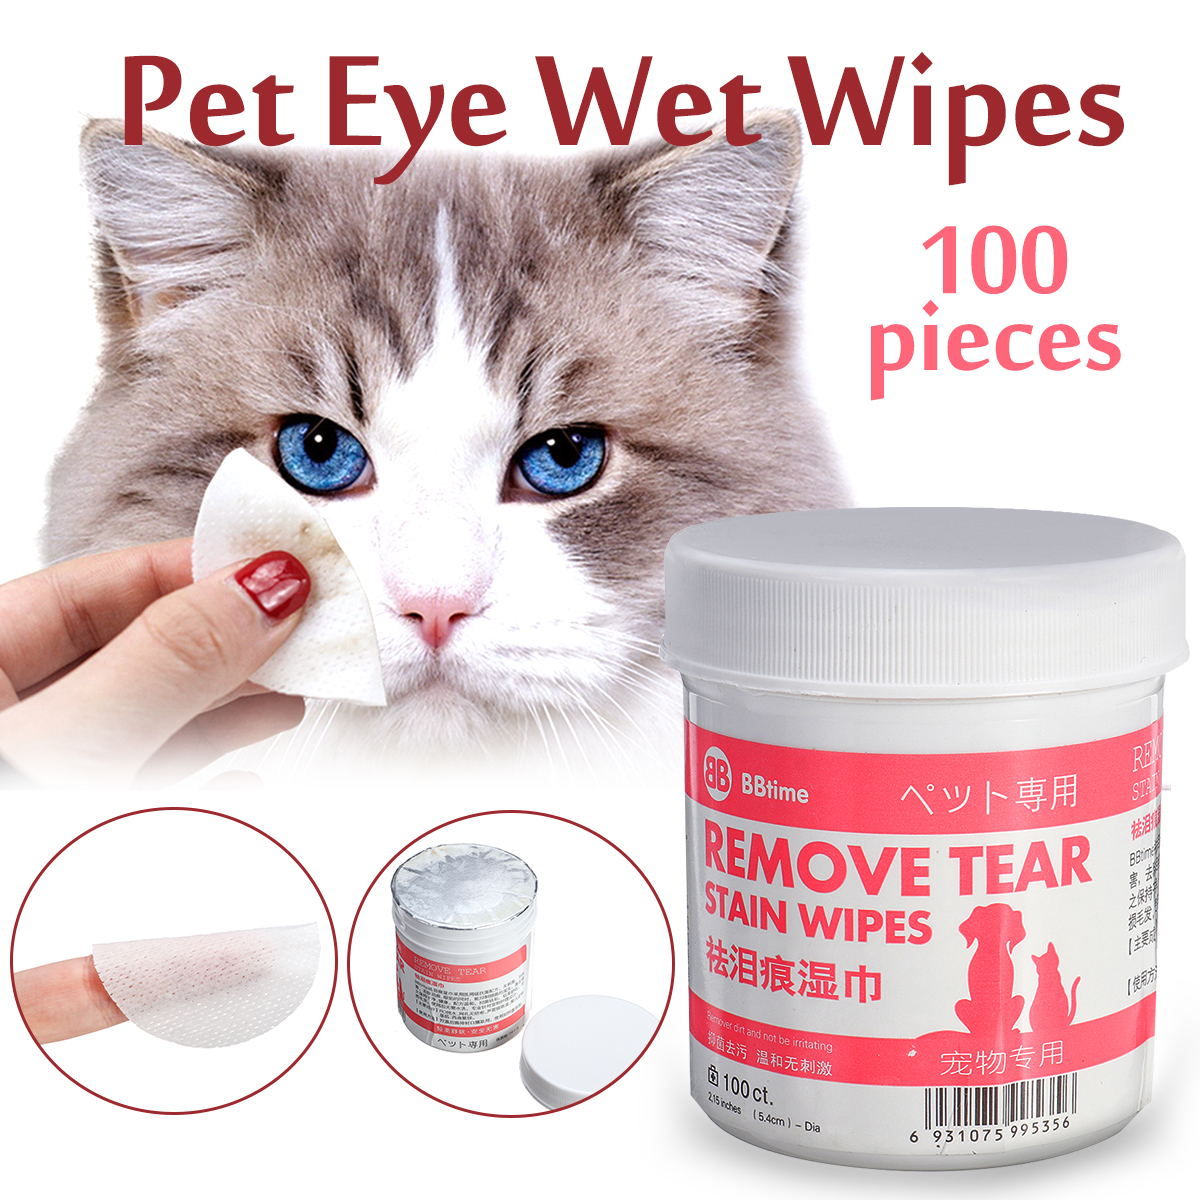 Tear Stain Remover Wet Wipes for Dog & Cat Eye Grooming - 100Pcs Cotton Cleaning Pads